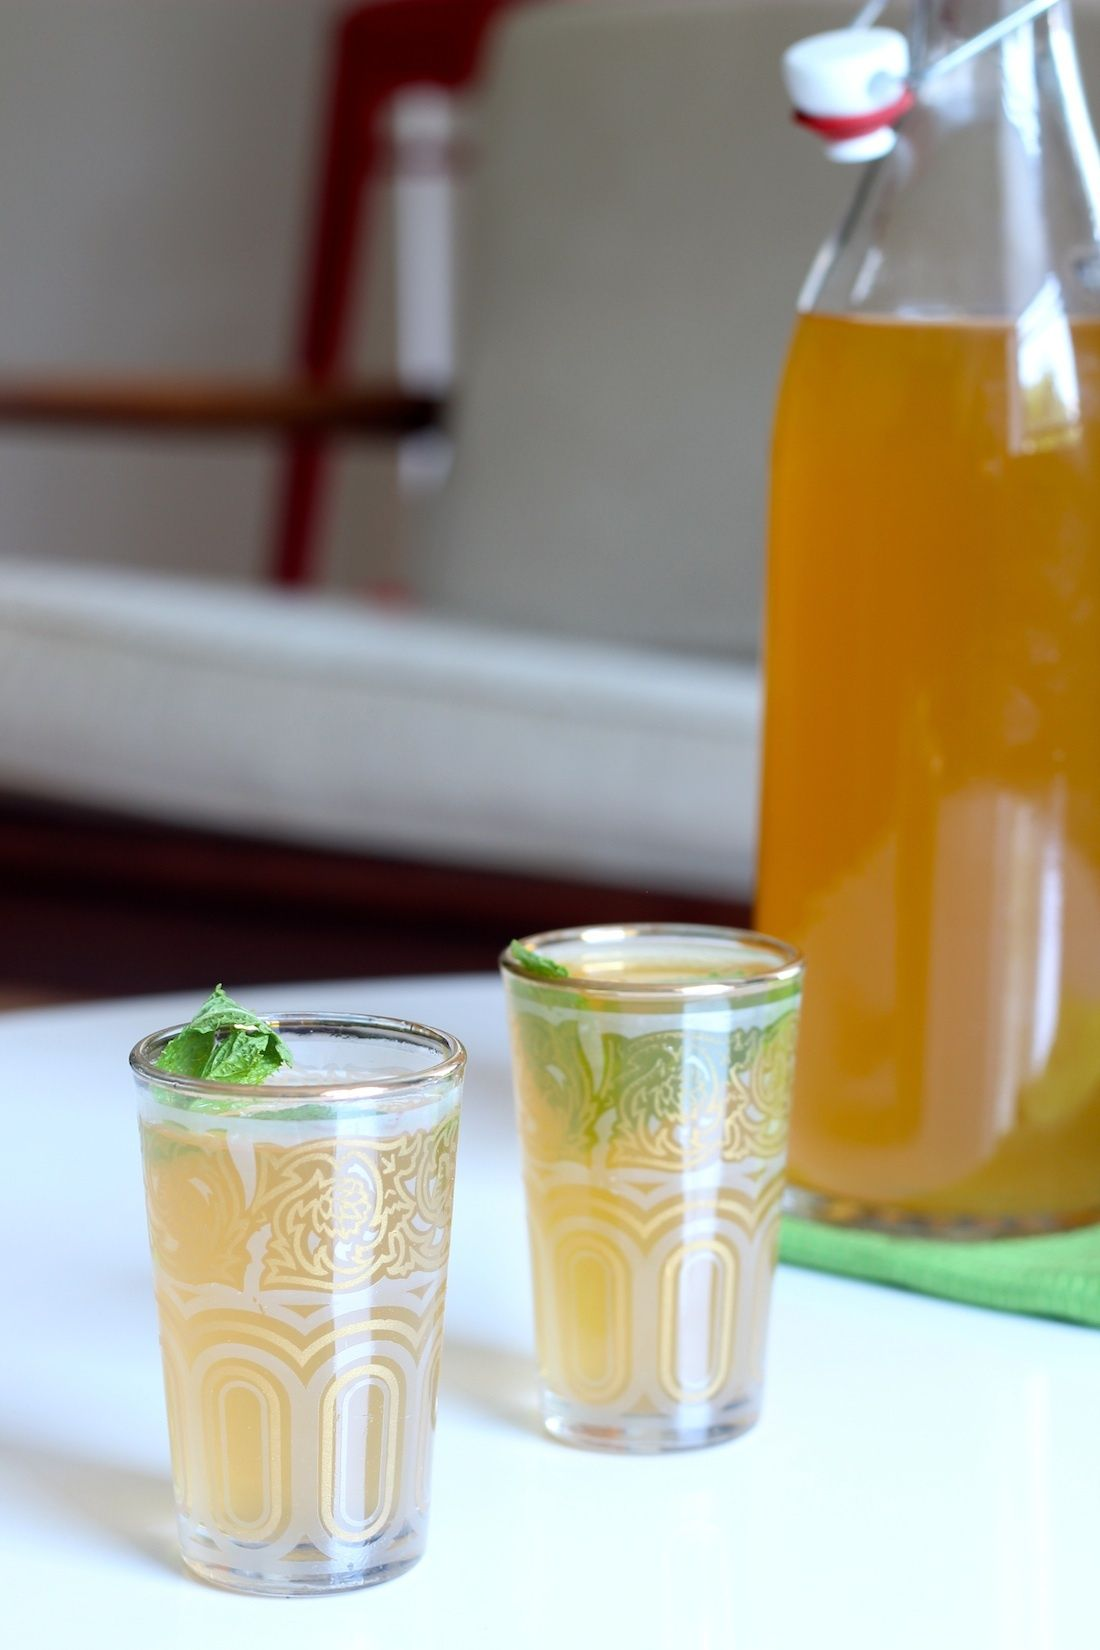 Iced Ginger Mint Tea Try our Ginger Limonitz. Fresh, organic, sparkling ginger lemonade. details at limonitz.com